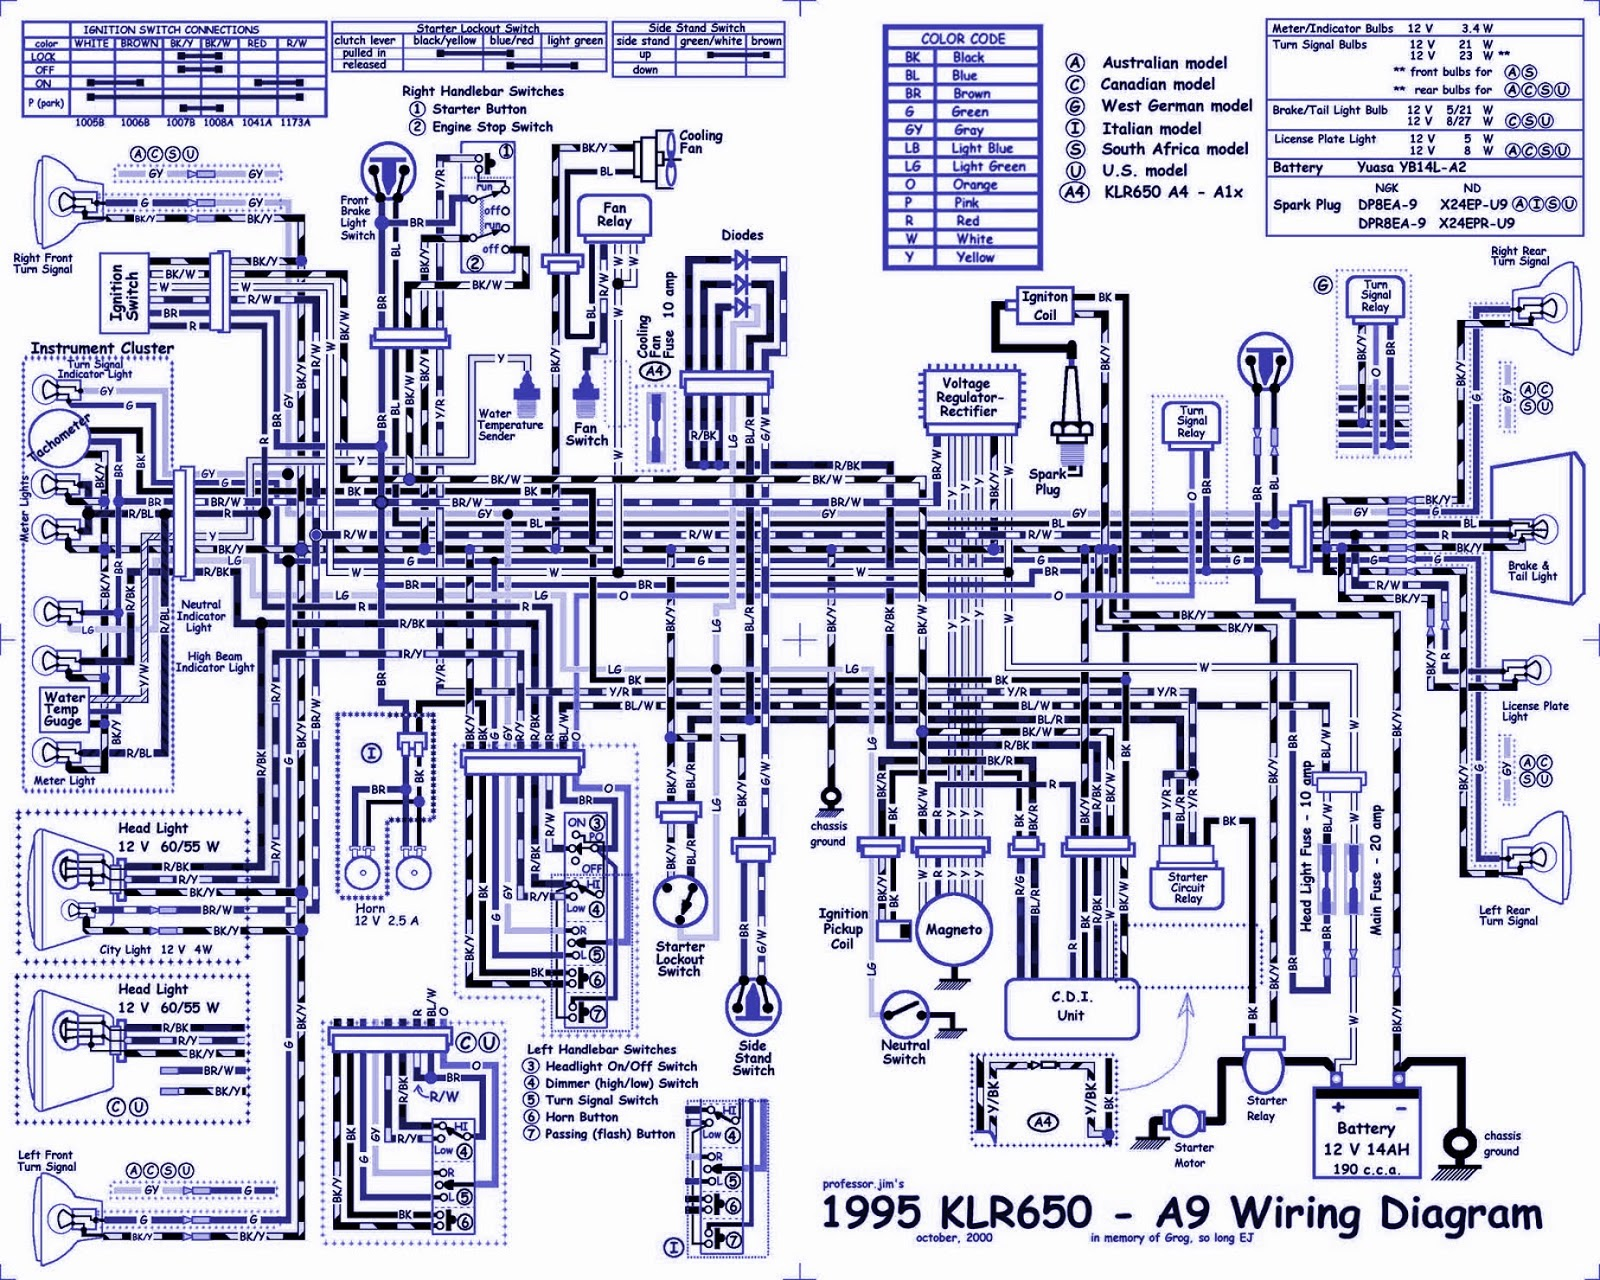 Oldsmobile vin location wiring diagram and fuse box diagram images - Wiring Diagram Old Bussmann Fuse Panel Wiring Discover Your Home Fuse Box Wiring Diagram Nilza